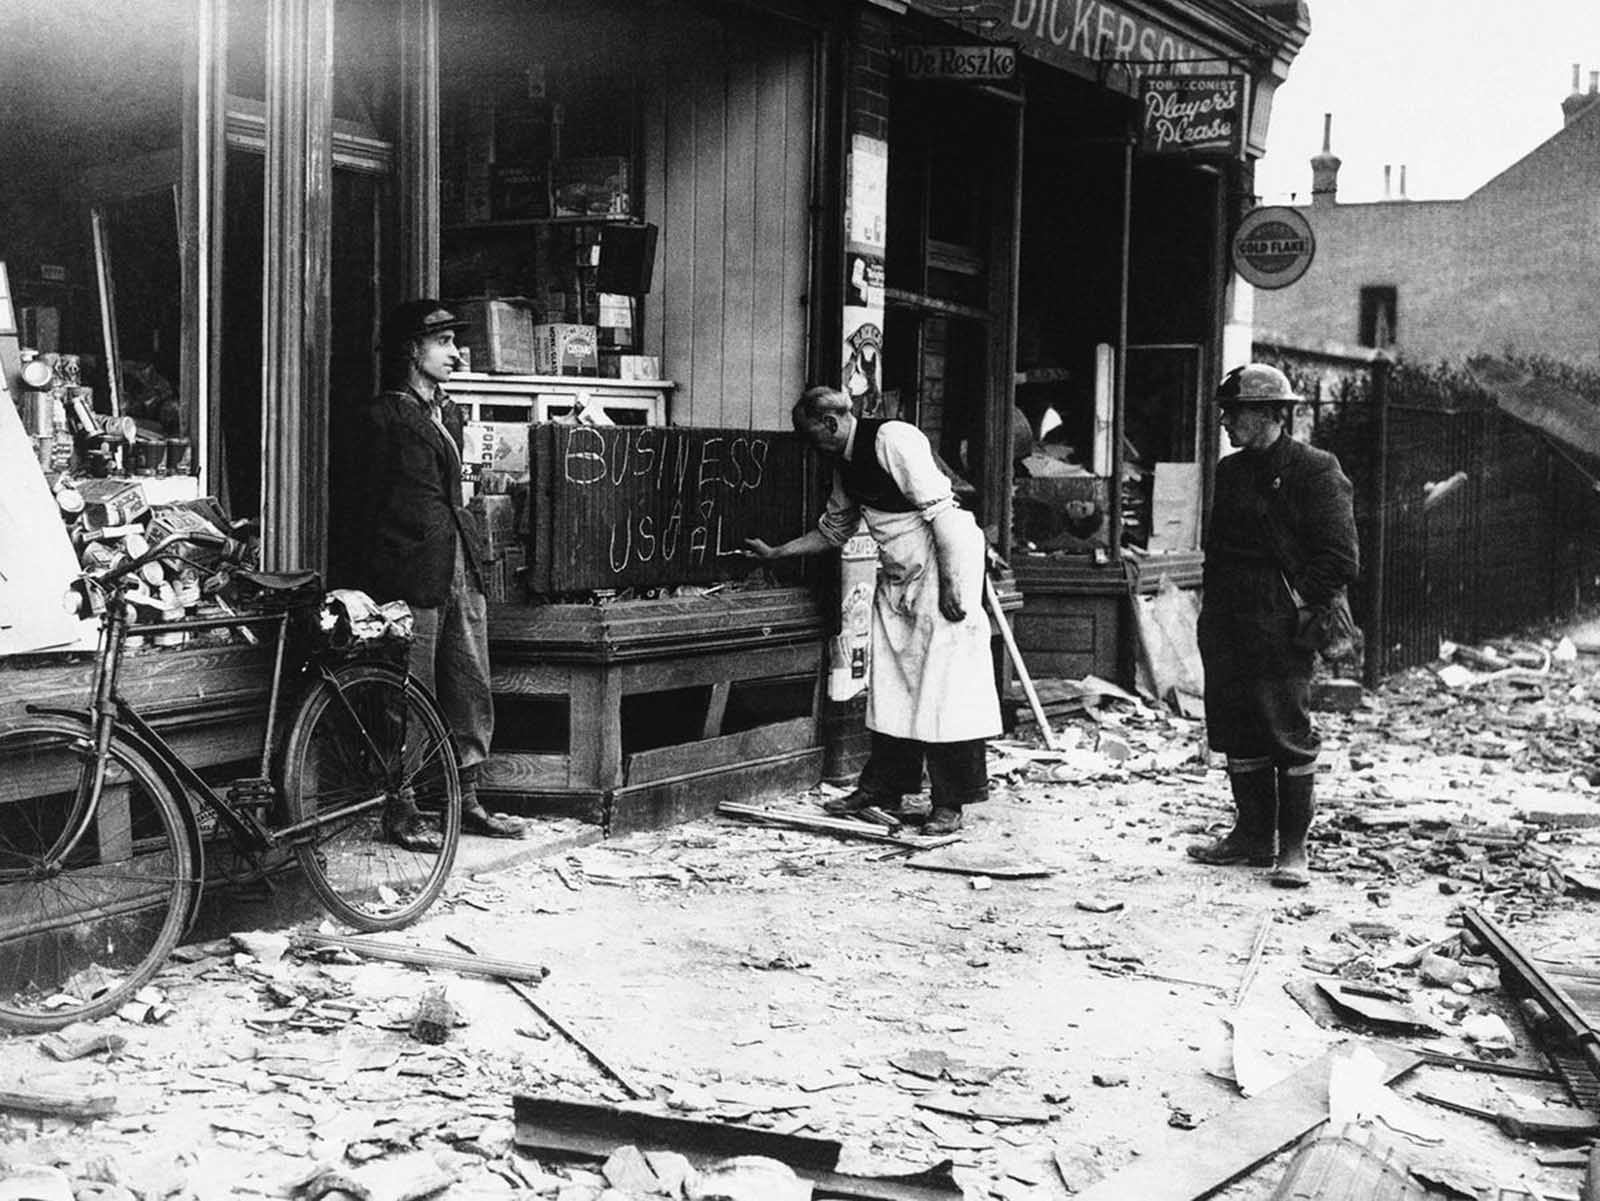 Undaunted by a night of German air raids in which his store front was blasted, a shopkeeper opens up the morning after for